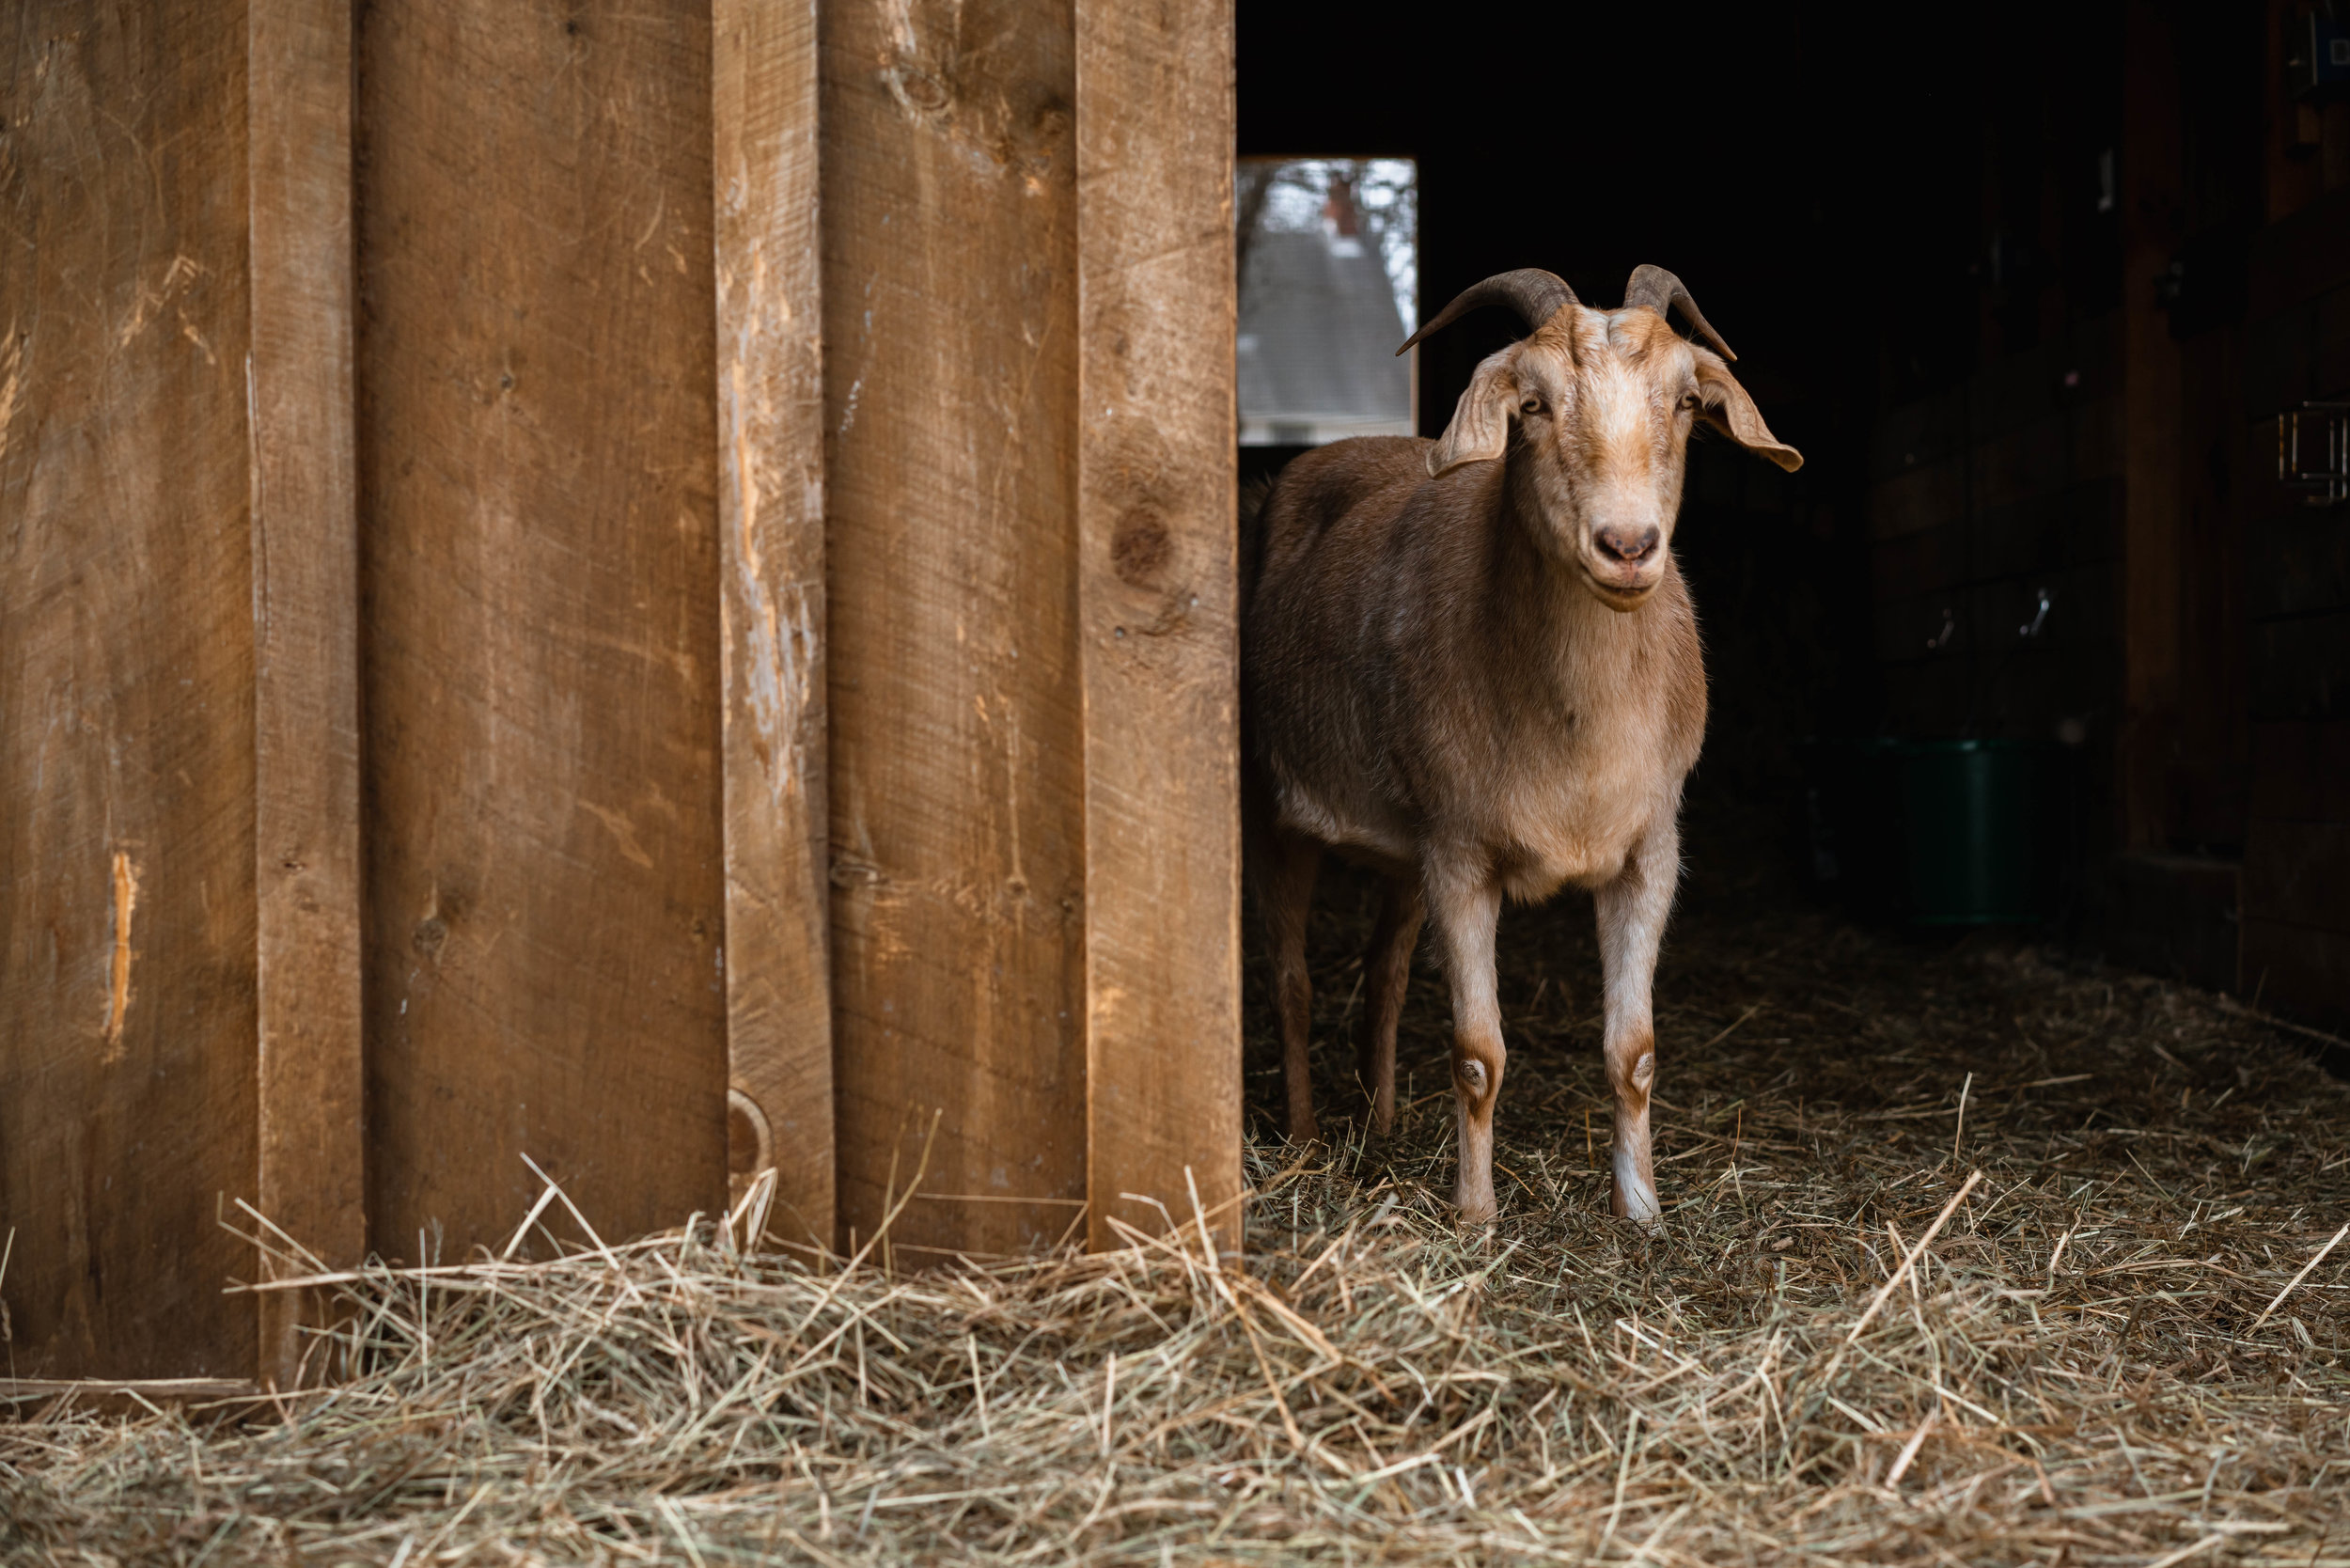 In the Fall of 2015, multiple sanctuaries  rescued over 120 animals from a backyard butcher  in Montgomery, NY. Hallie (pictured) was one of the baby goats born from one of the rescued mothers.